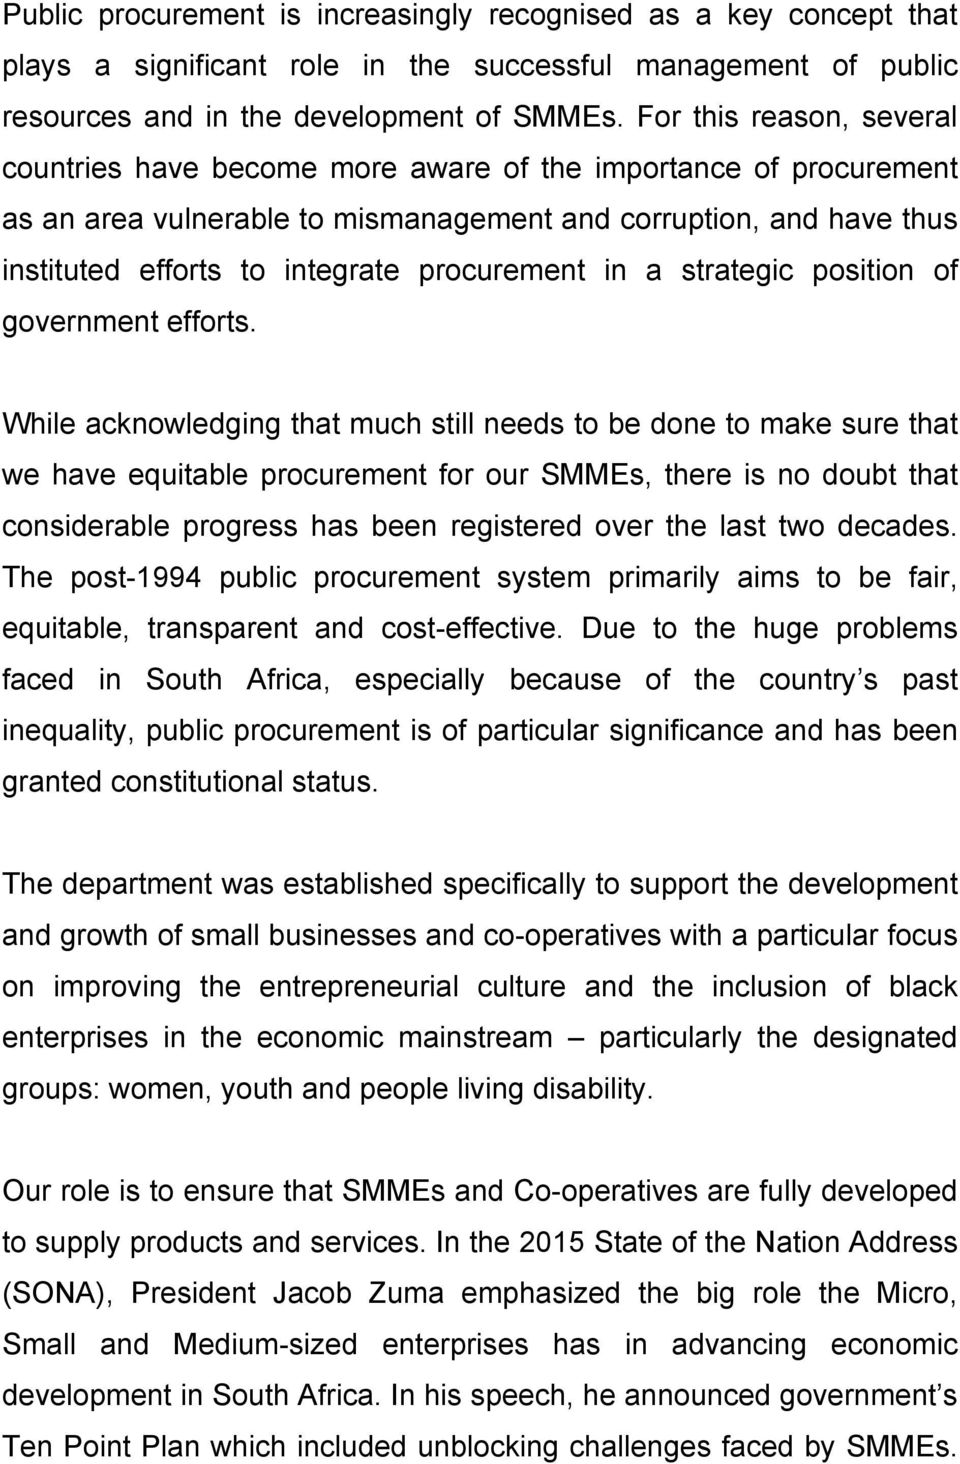 procurement in a strategic position of government efforts.